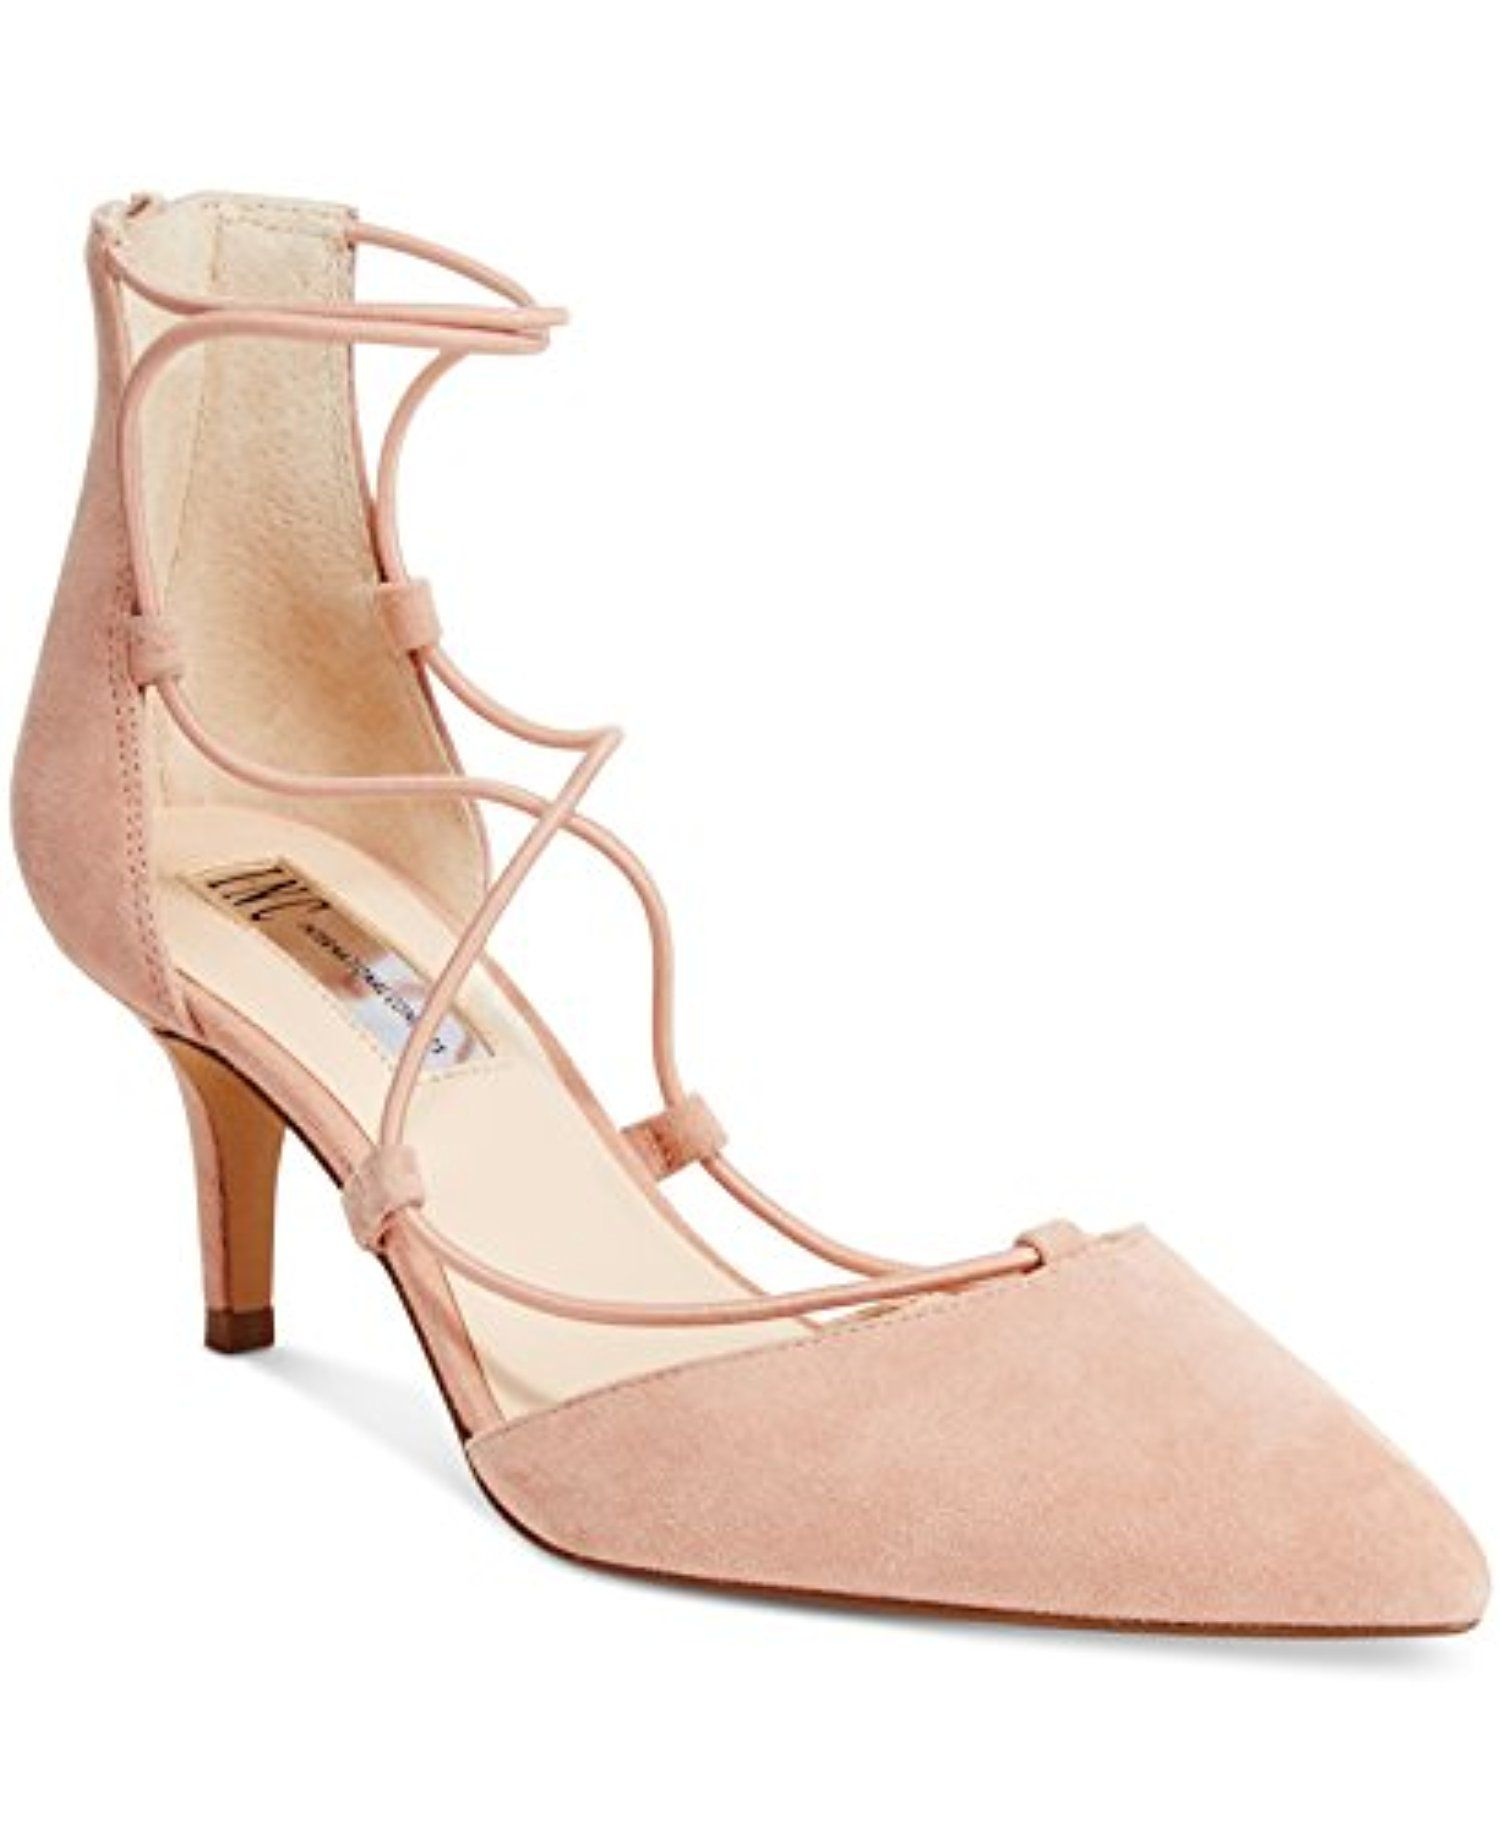 54191400881 Inc International Concepts Daree Lace-Up Pumps Women s Shoes -- Awesome  products selected by Anna Churchill